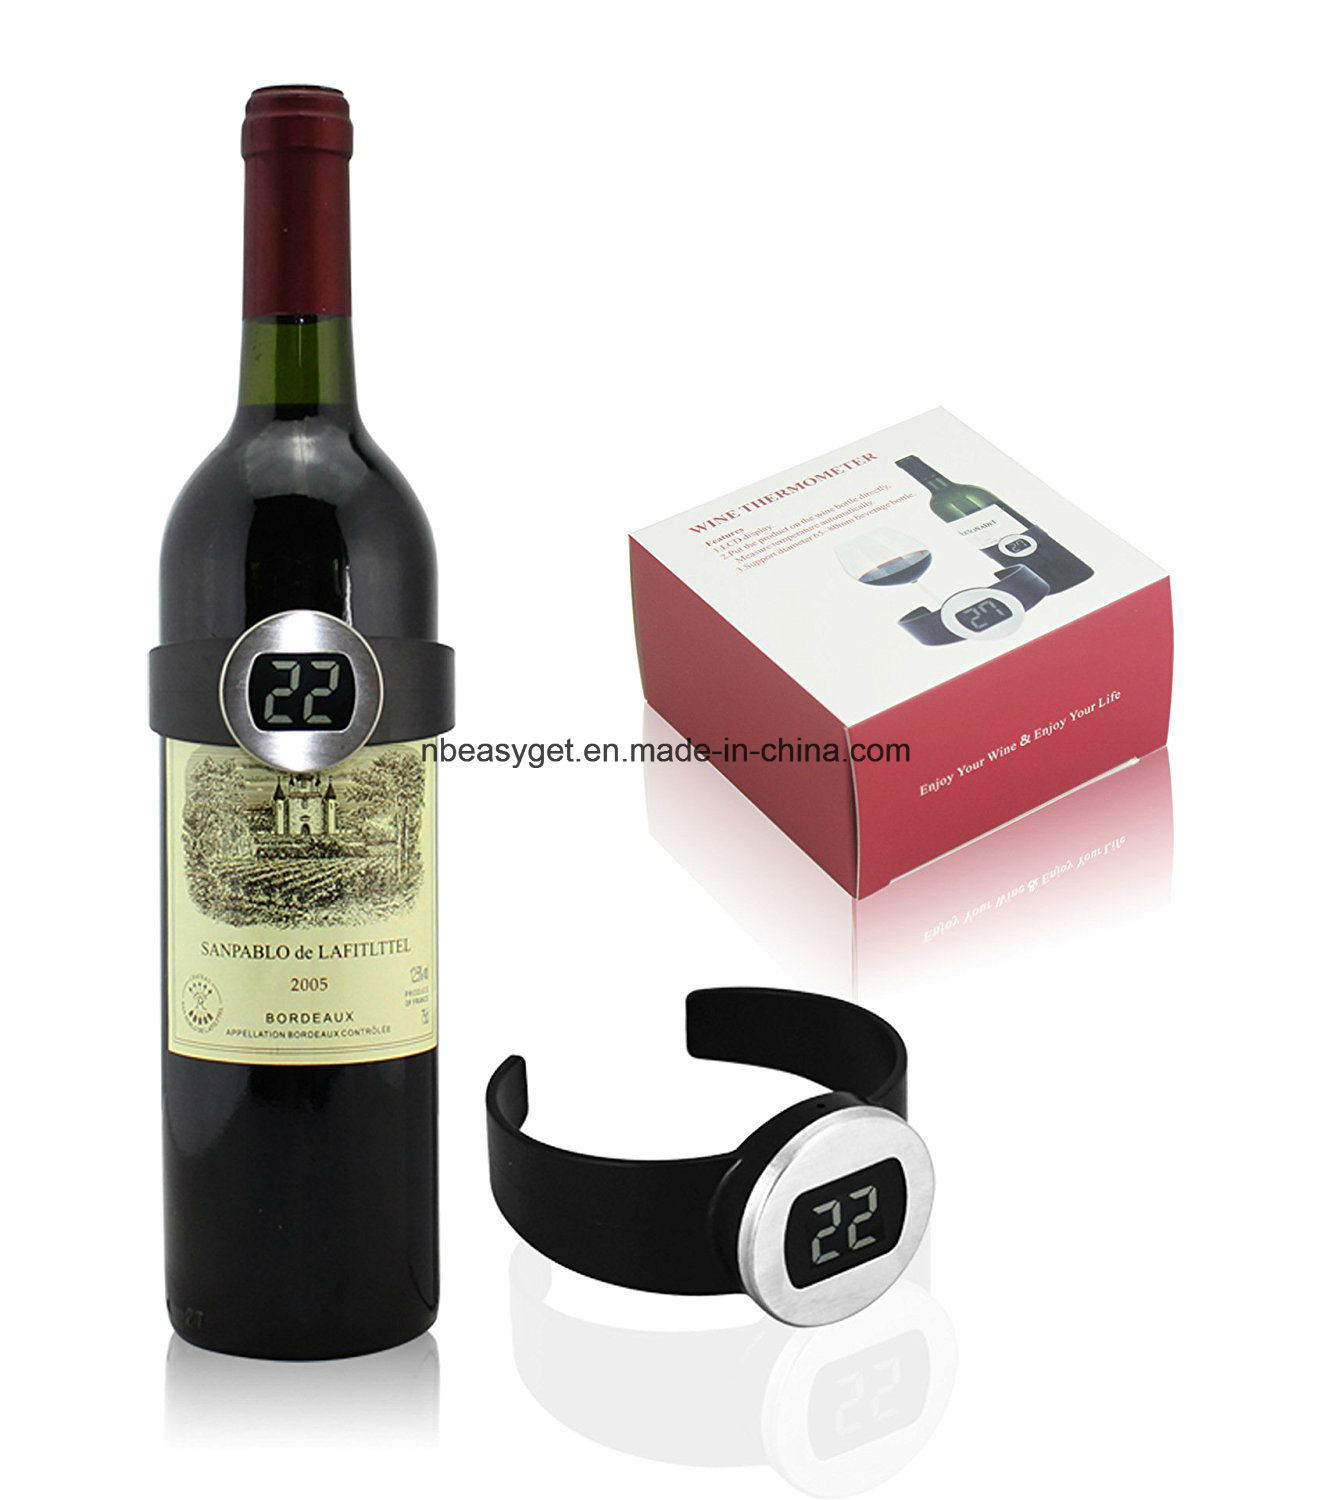 Champagne and Wine Bottle Snap Thermometer Digital Instan Read Thermometers with LED Display for Wine Enthusiast Red Wine Bracelet Thermometer